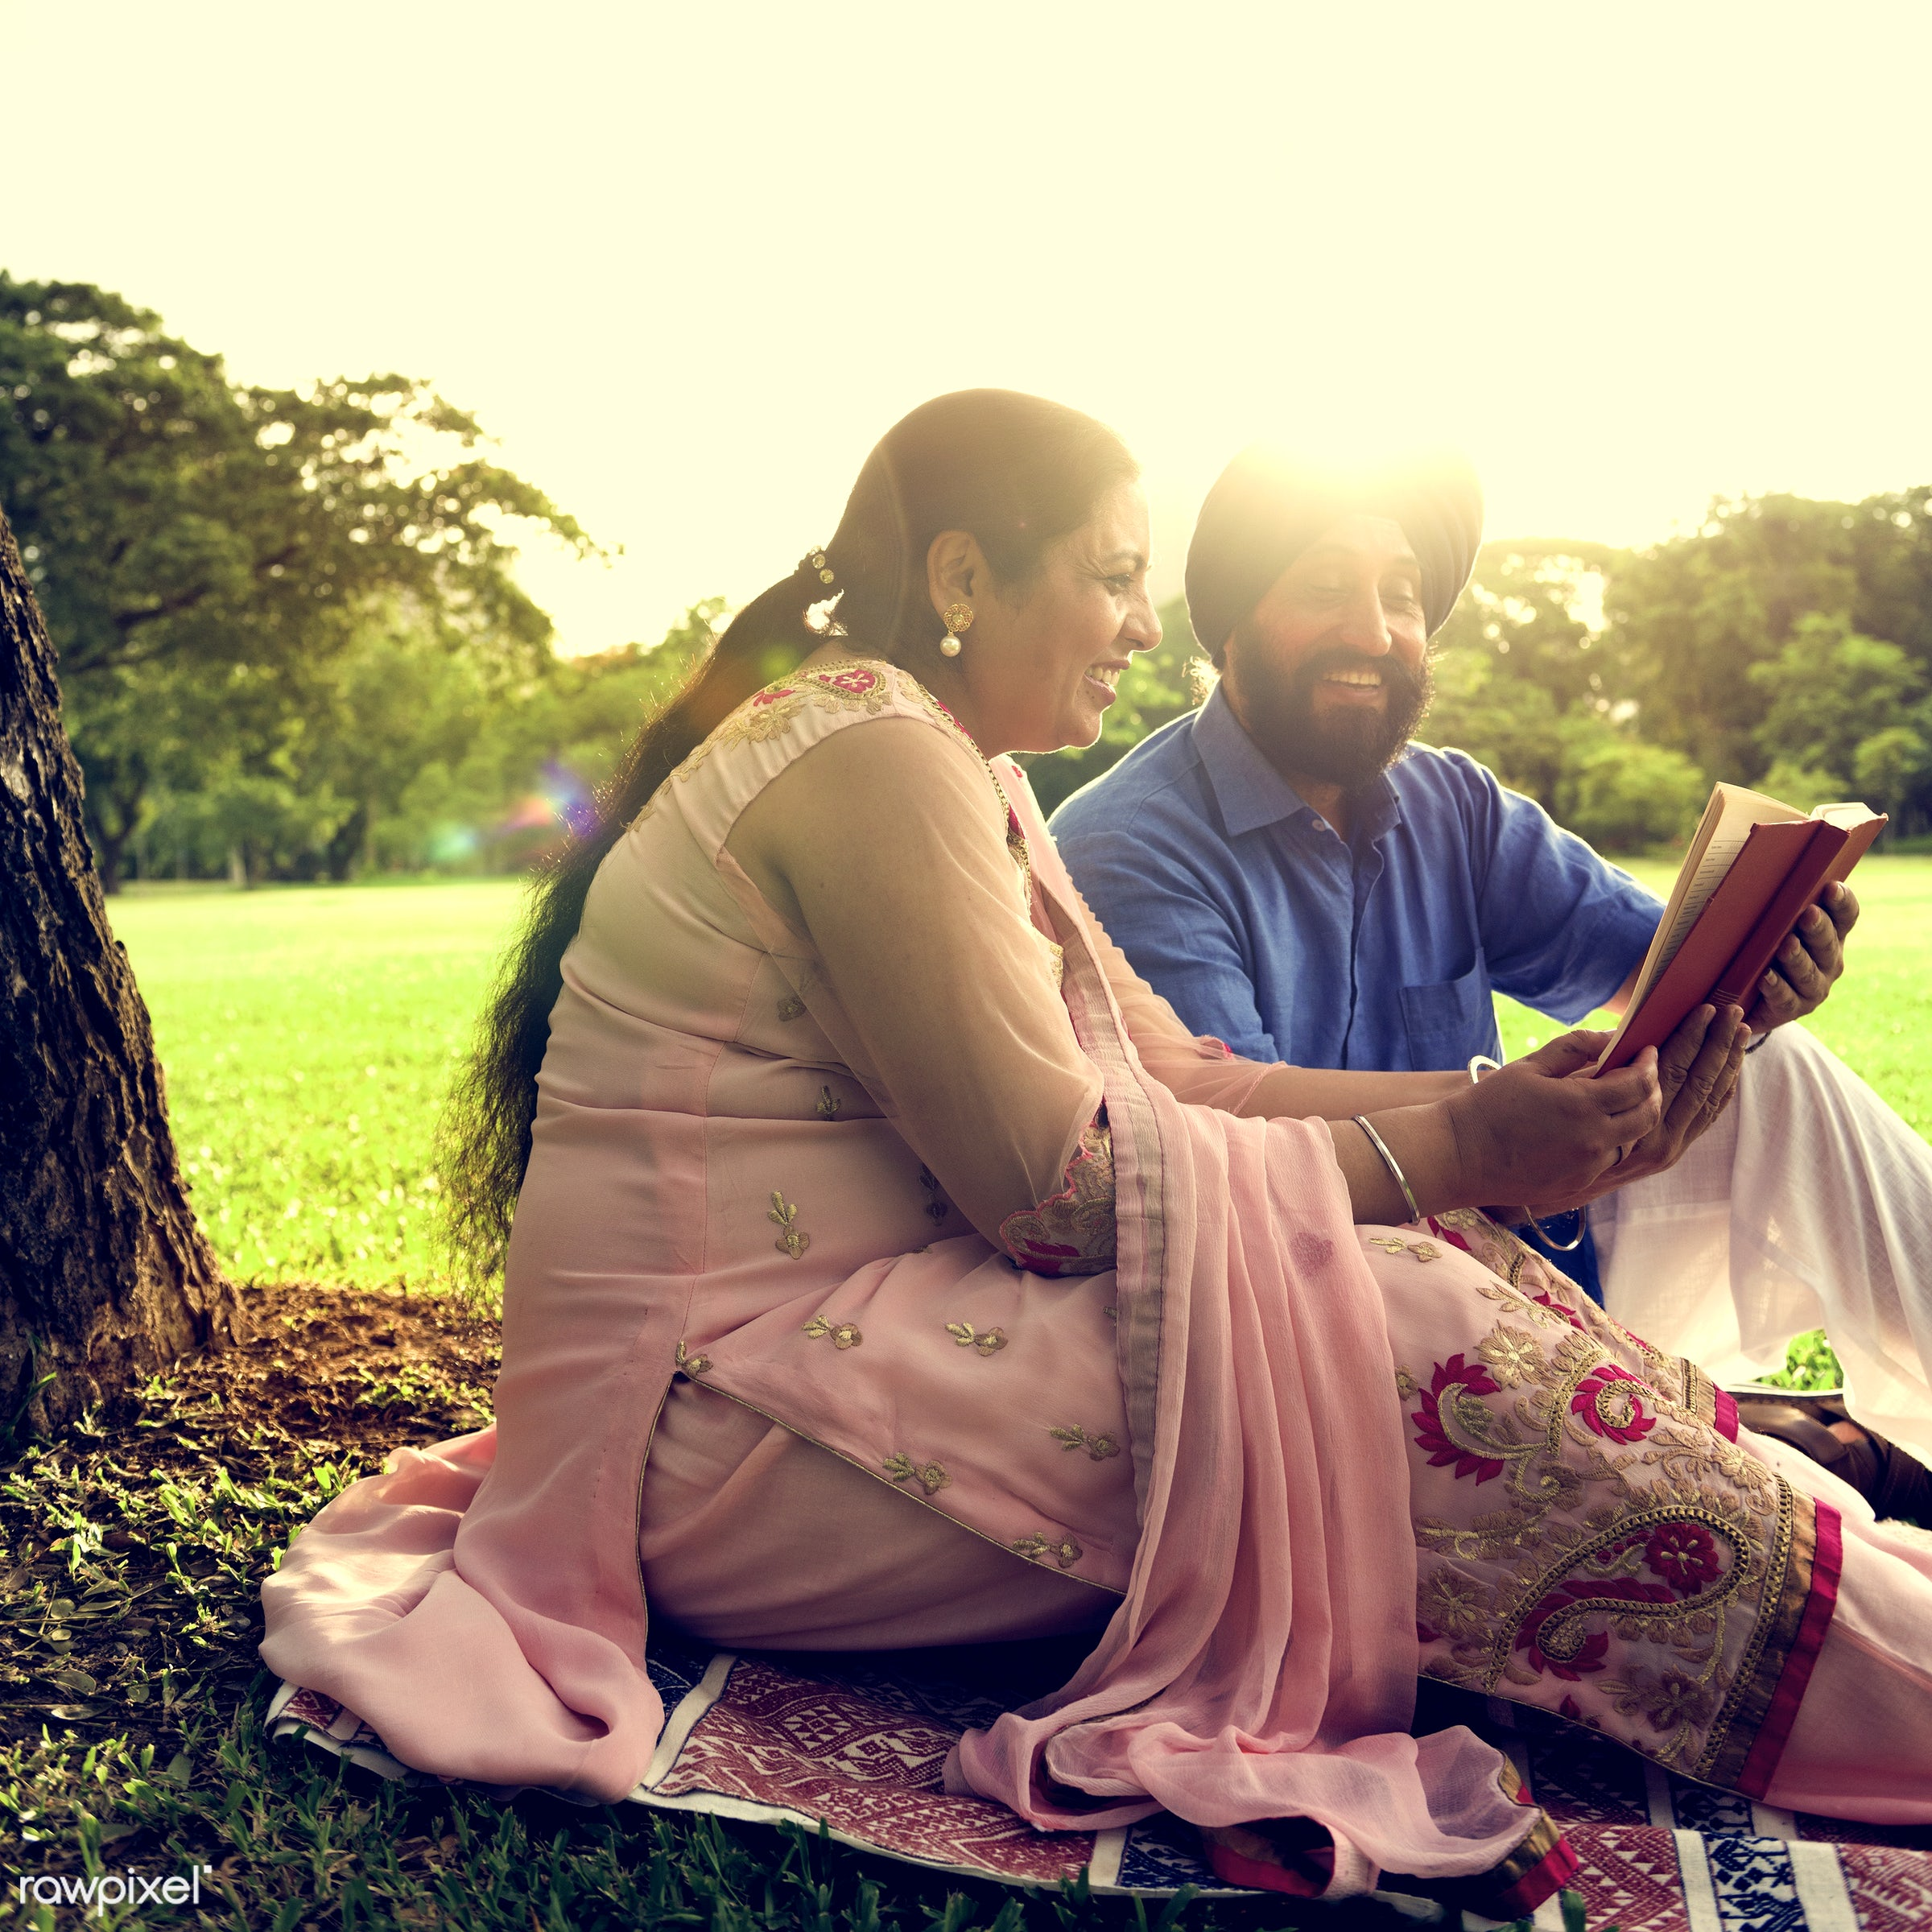 Indian Couple Love Care Concept - activity, adult, asian, bonding, book, care, casual, cheerful, couple, day, ethnicity,...